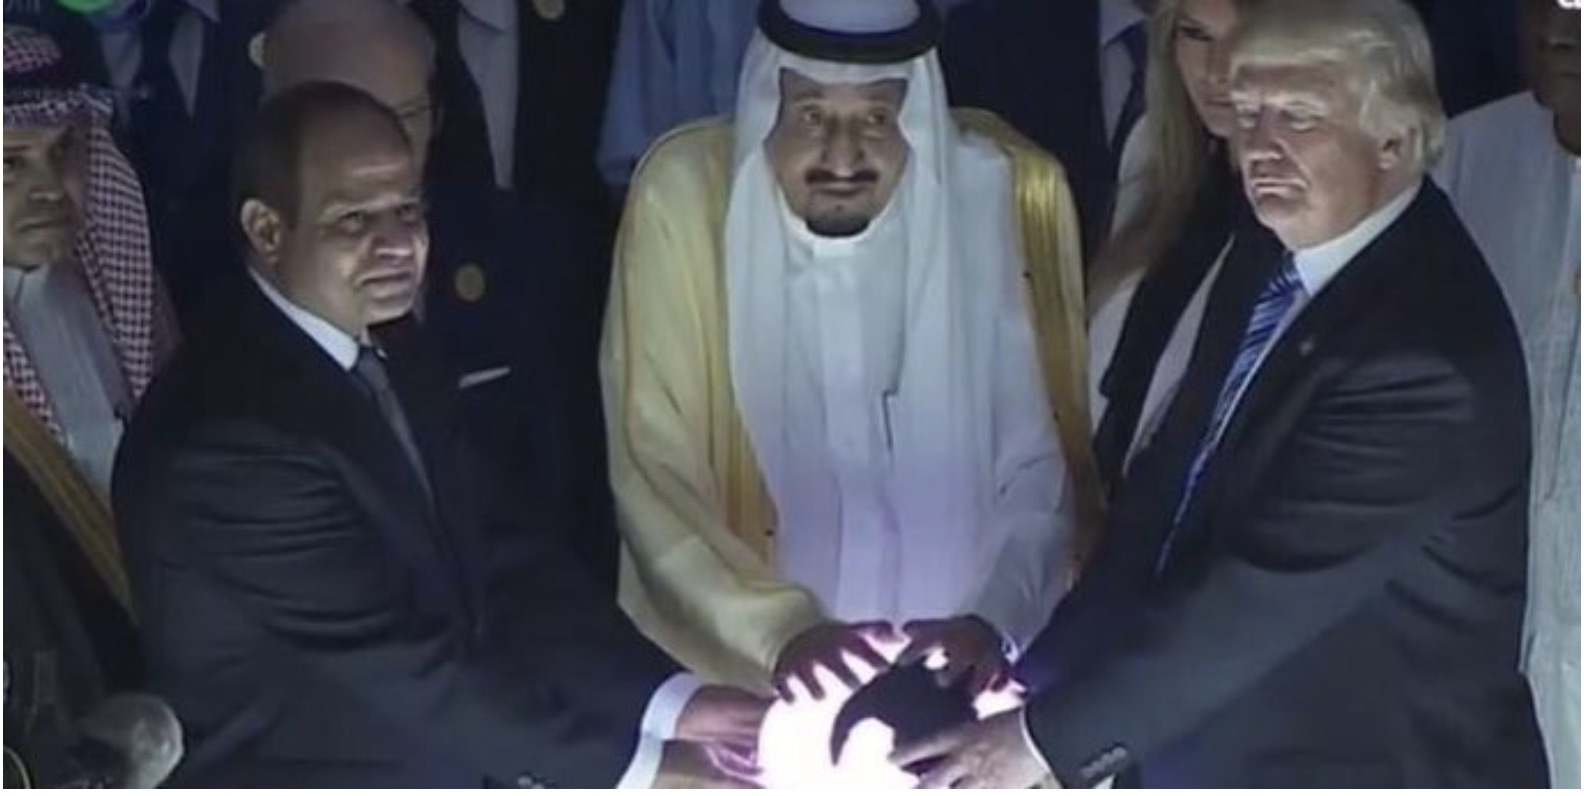 The U.S. and Saudi Arabia Are About to Make More Disastrous and Idiotic Mistakes – Part 1